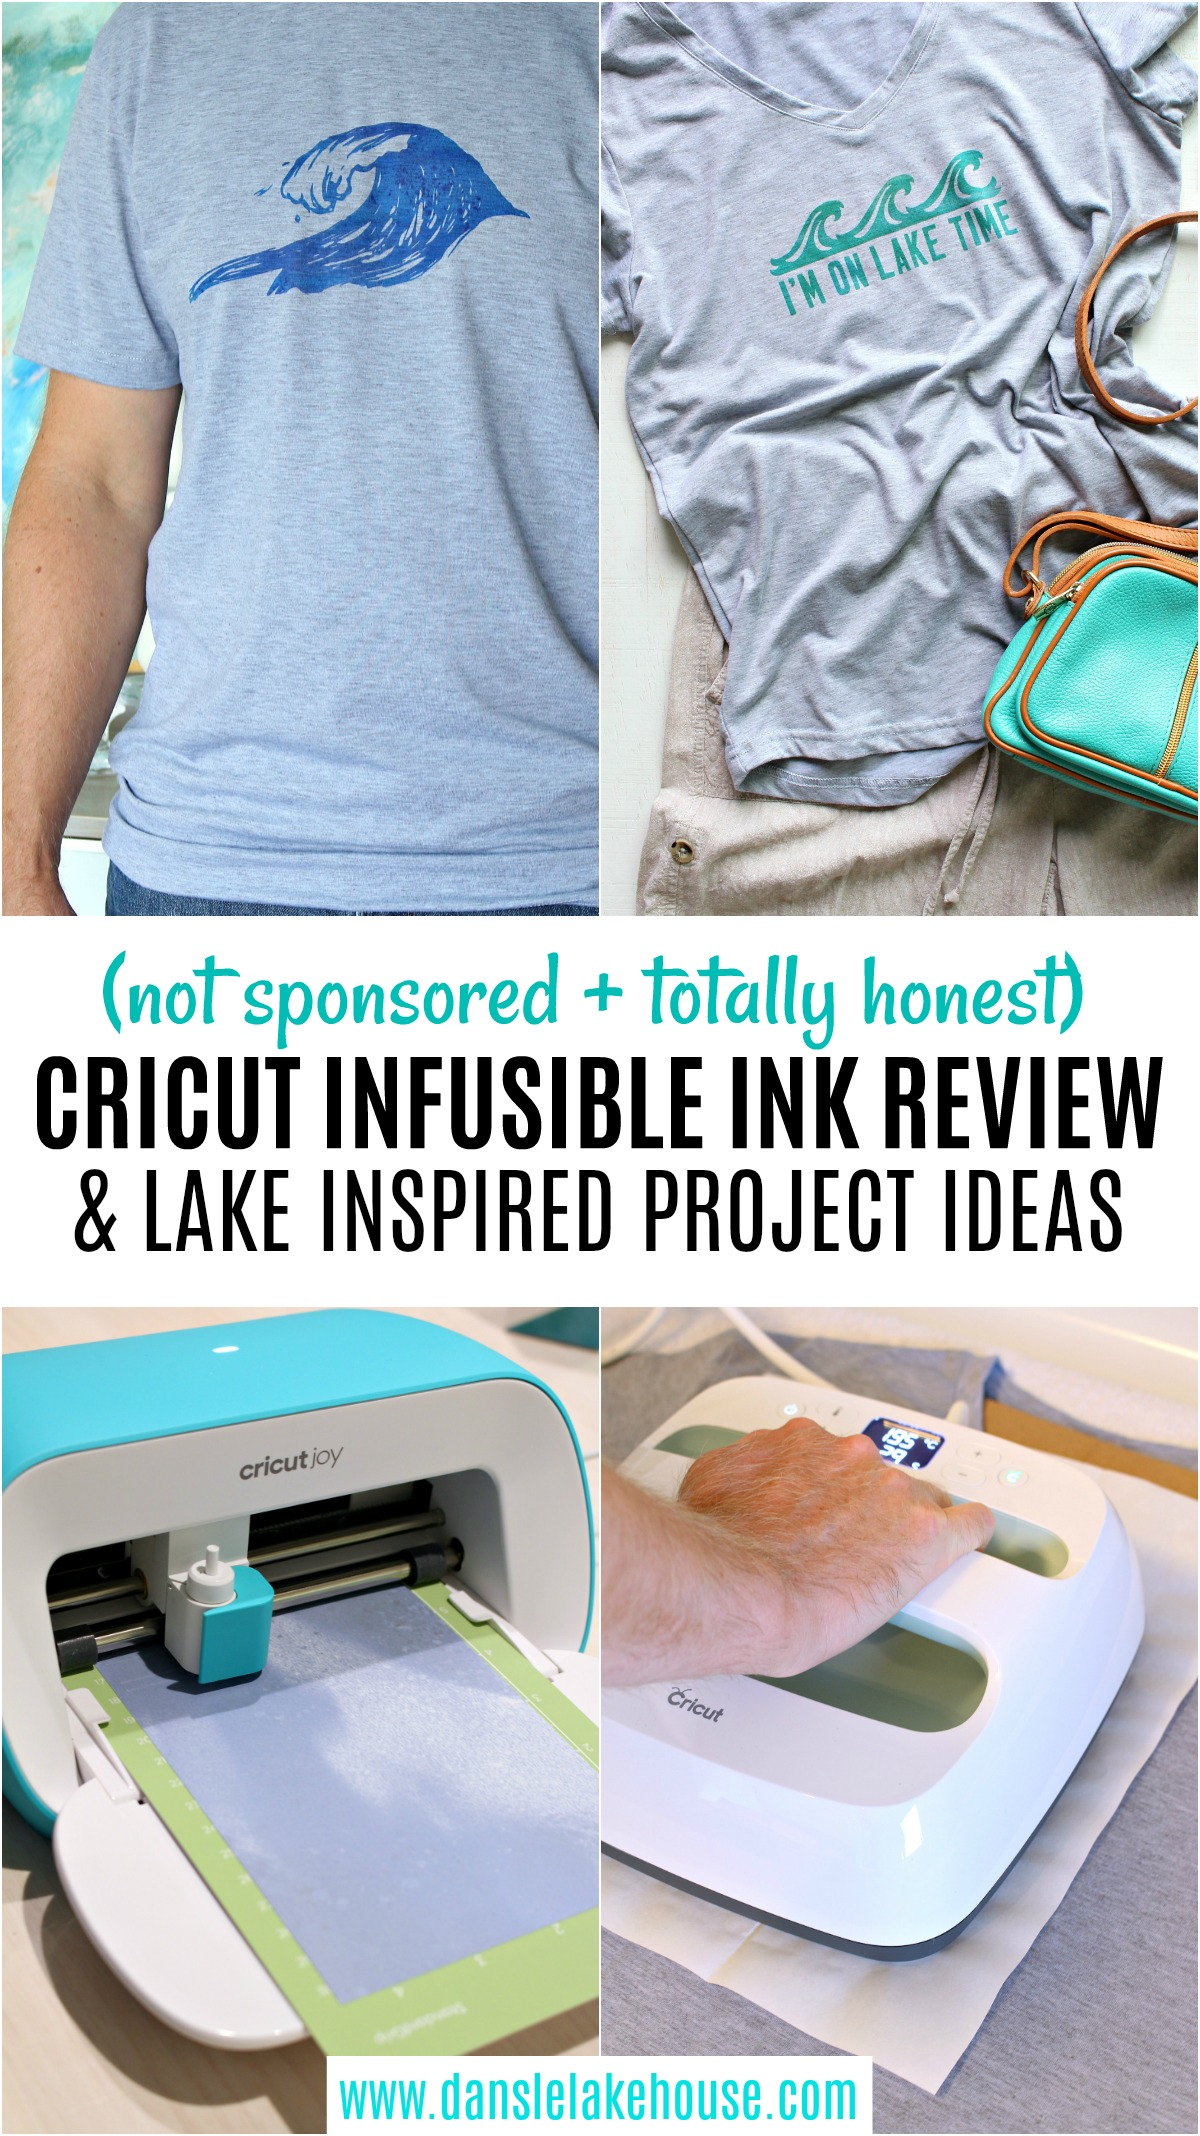 Cricut Infusible Ink Review (Not Sponsored) and Lake Inspired Project Ideas